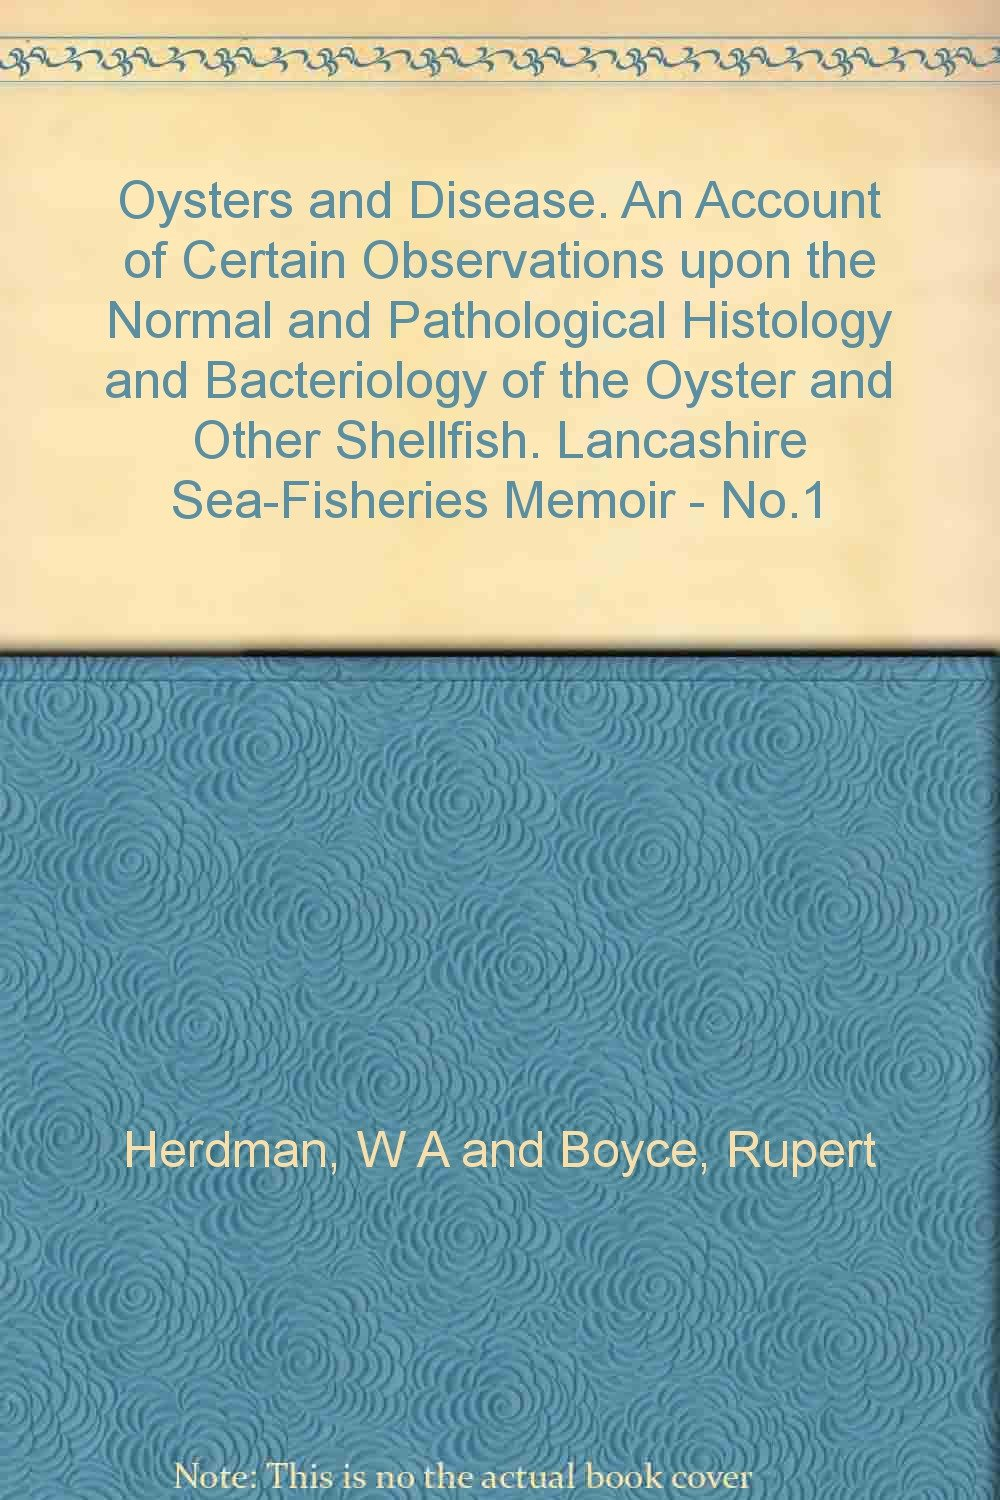 Oysters and disease;: An account of certain observations upon the normal and pathological histology and bacteriology of the oyster and other shellfish (Lancashire Sea-Fisheries Memoir)